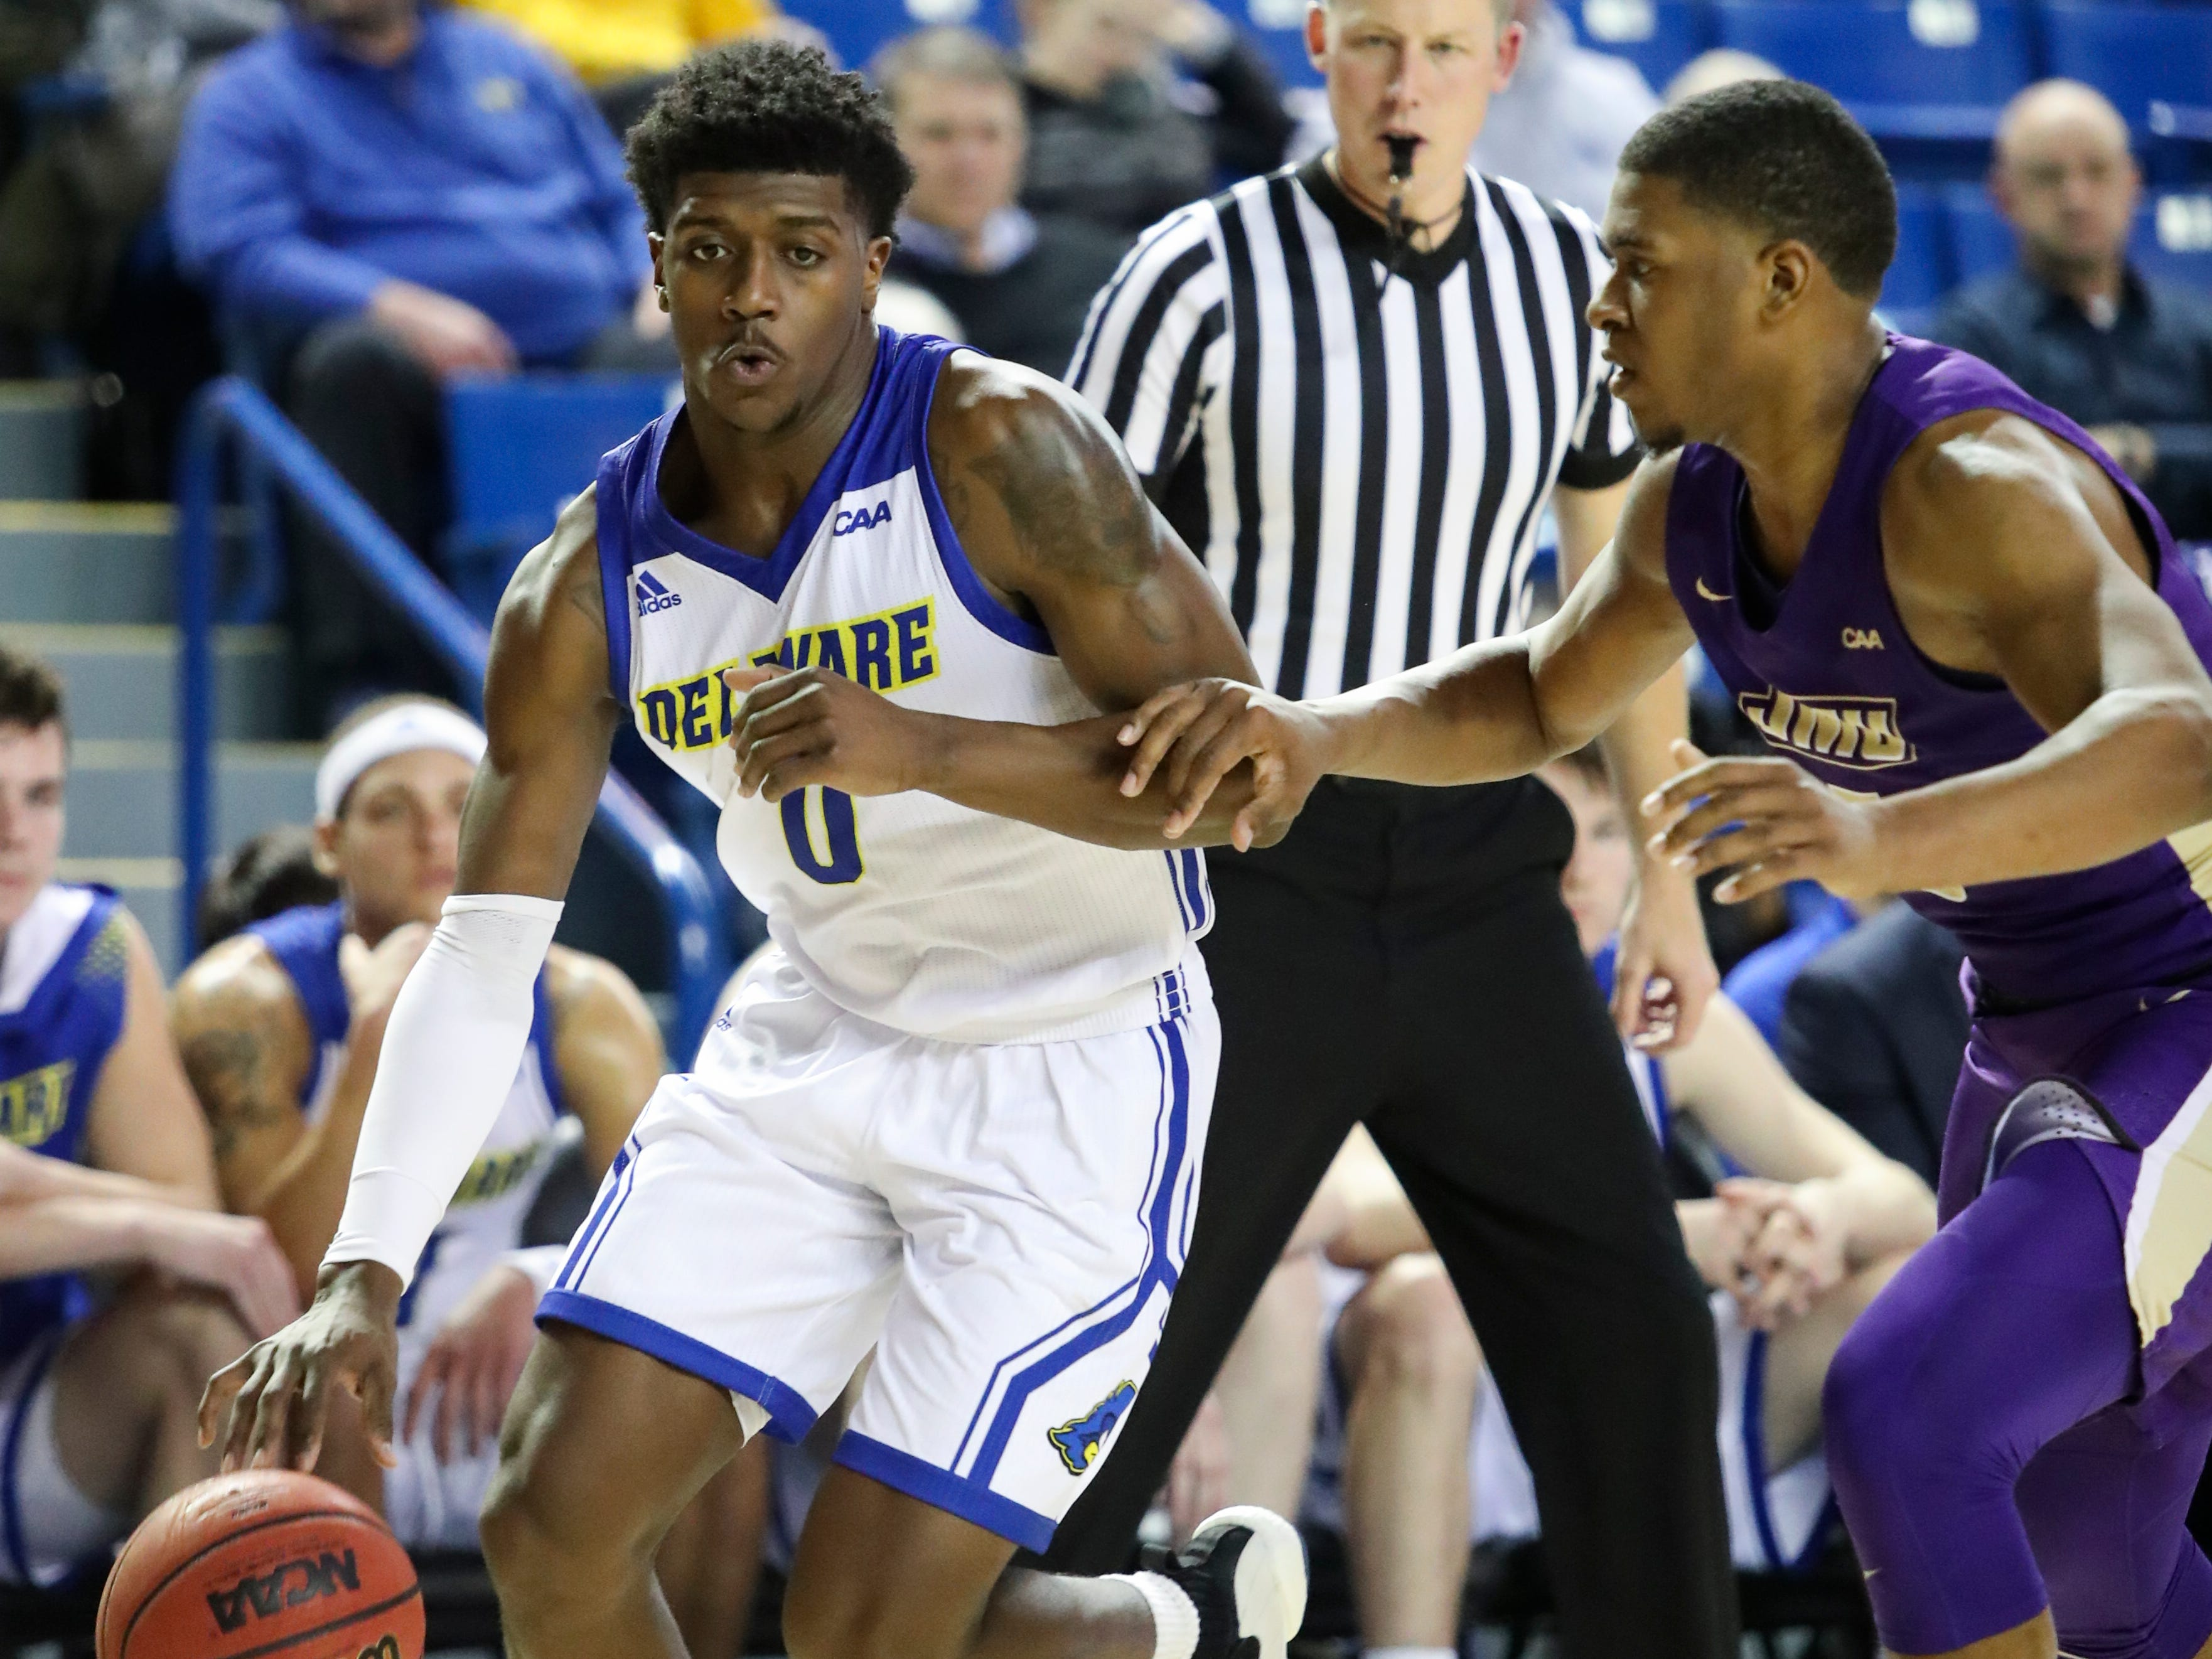 Delaware's Ryan Allen (0) drives against James Madison's Darius Banks in the second half of the Blue Hens' 76-69 win at the Bob Carpenter Center Thursday.